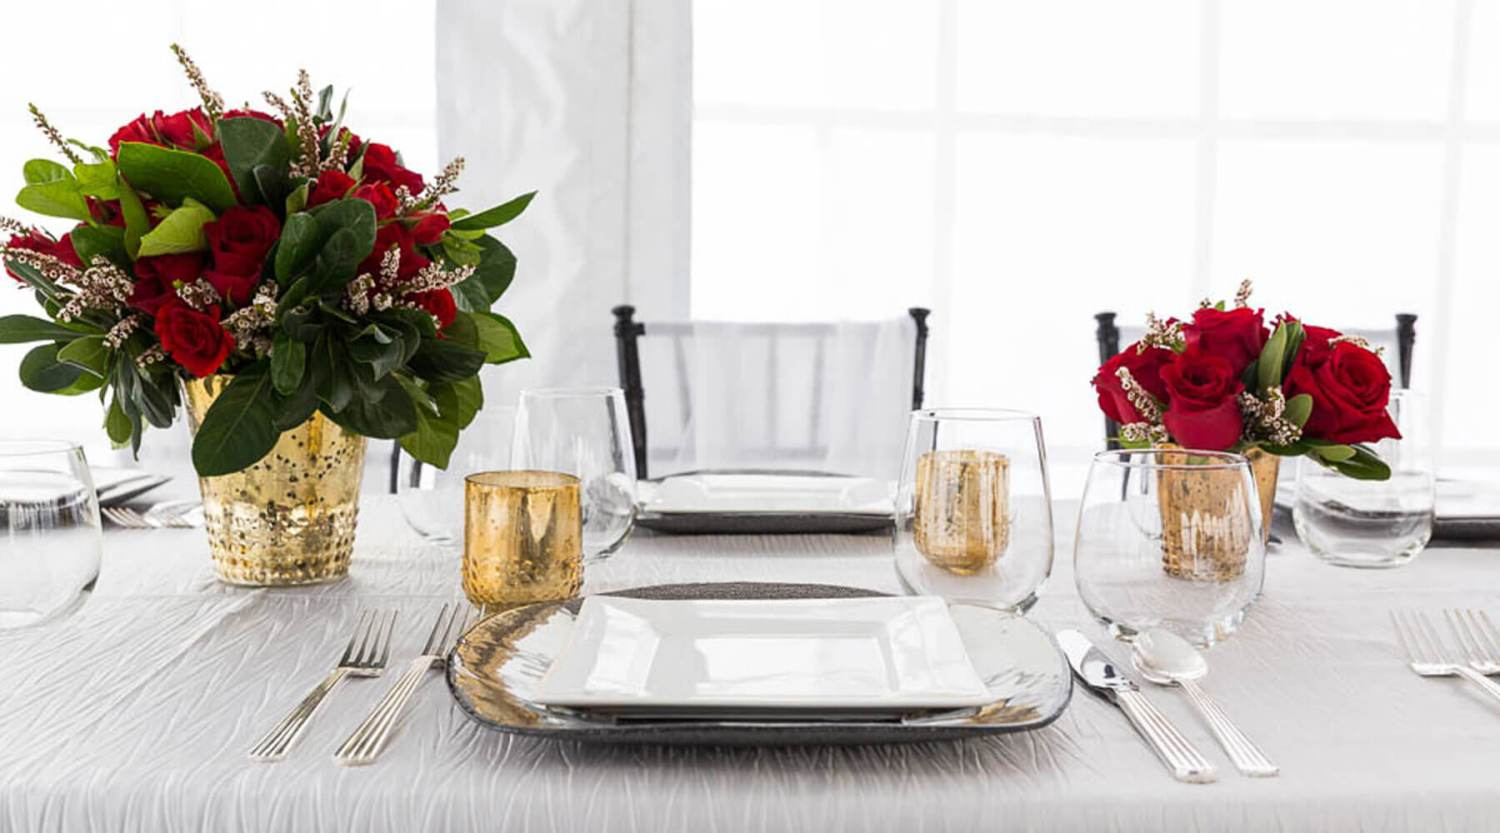 CO Tents & Event-Table Setting Rentals-China, Glassware & Flatware